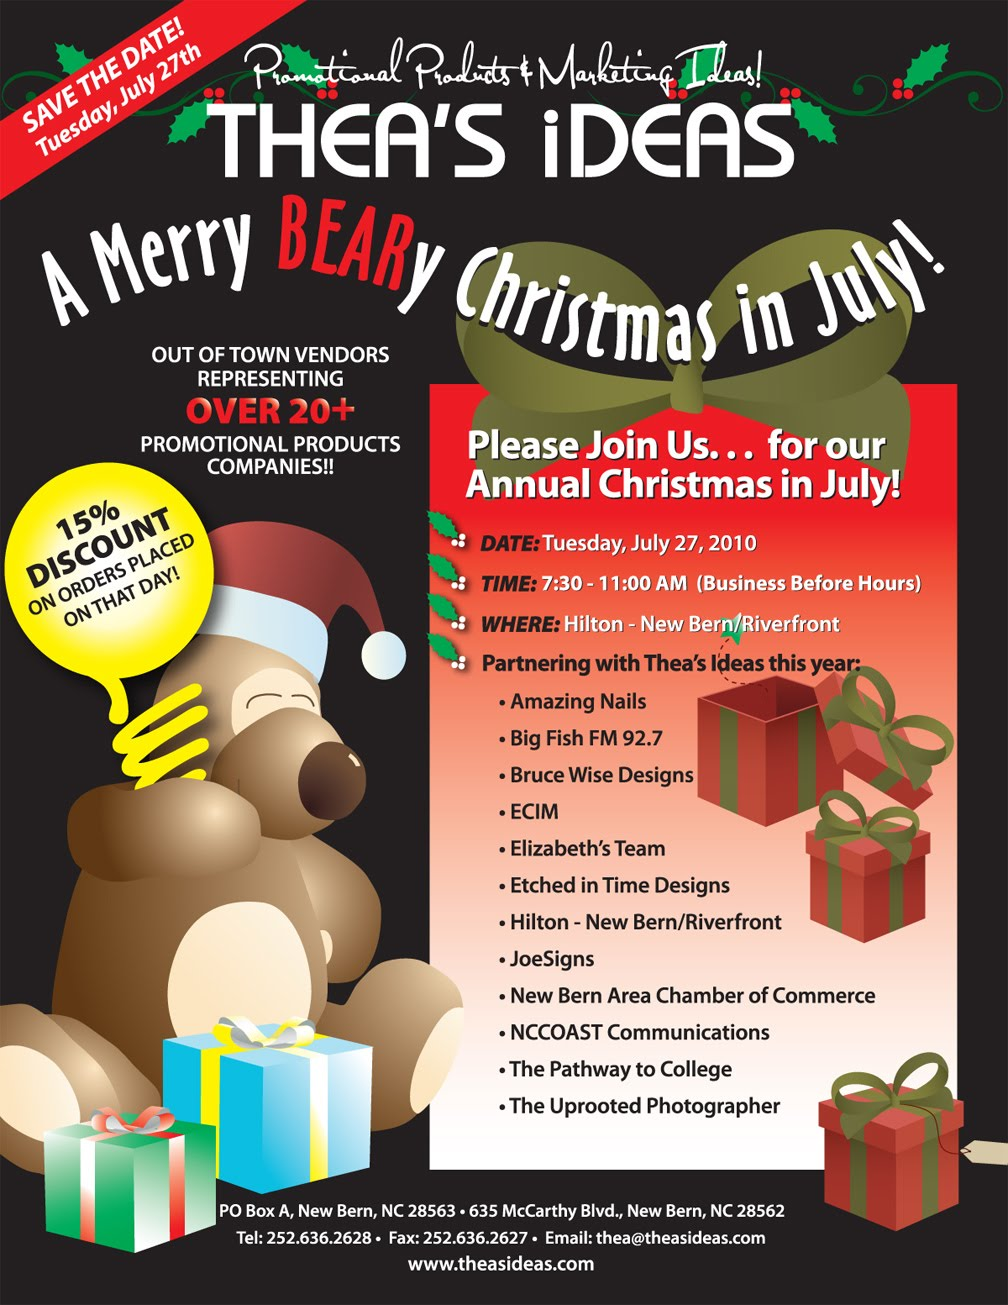 Christmas In July Ideas.Thea S Ideas Presents A Merry Beary Christmas In July